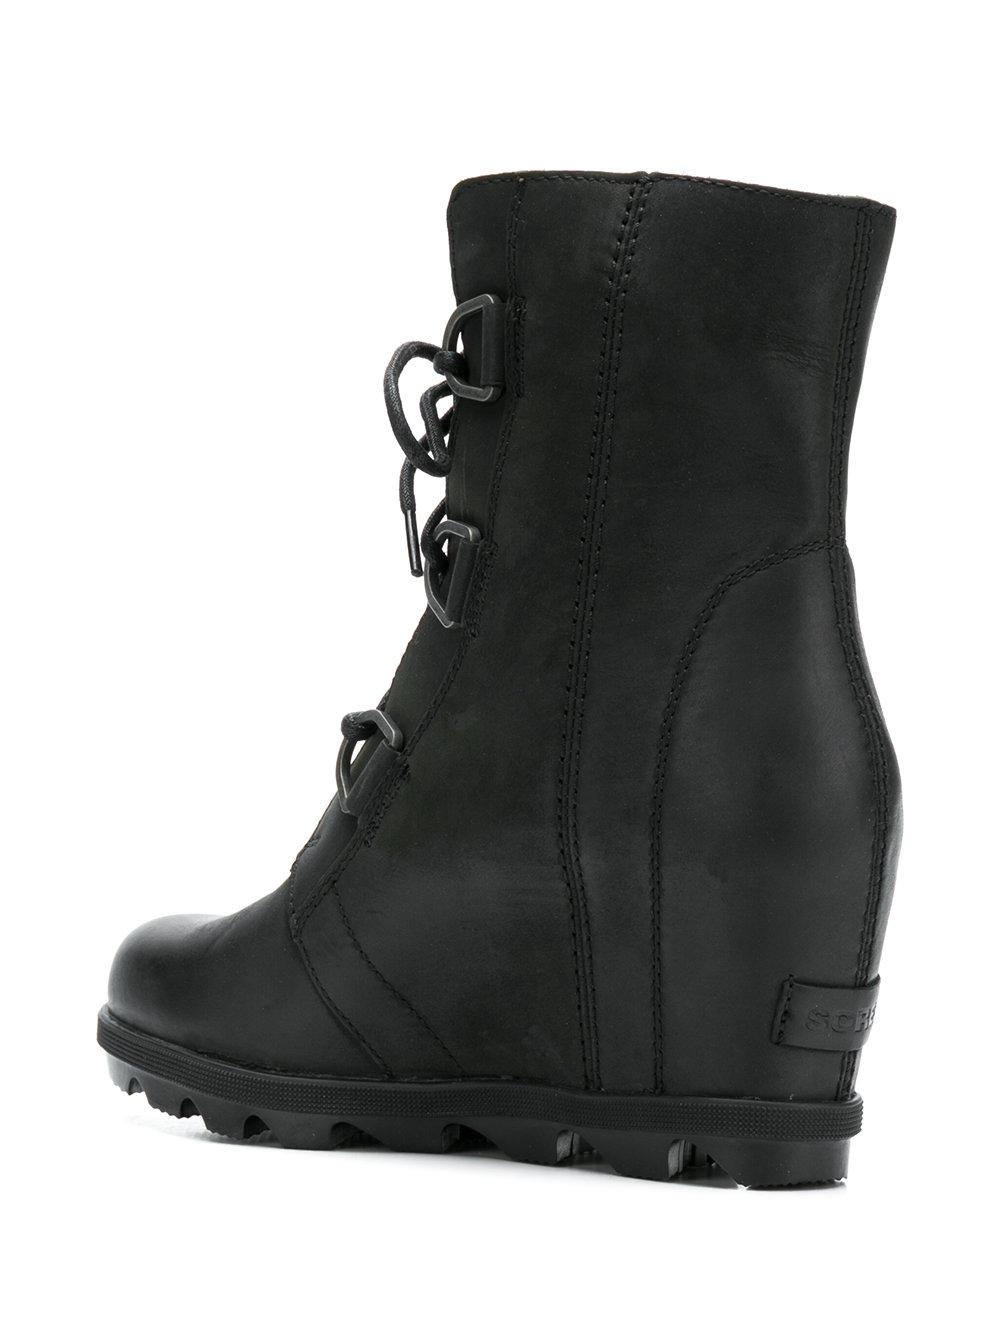 Sorel Leather Ankle Lace-up Boots in Black